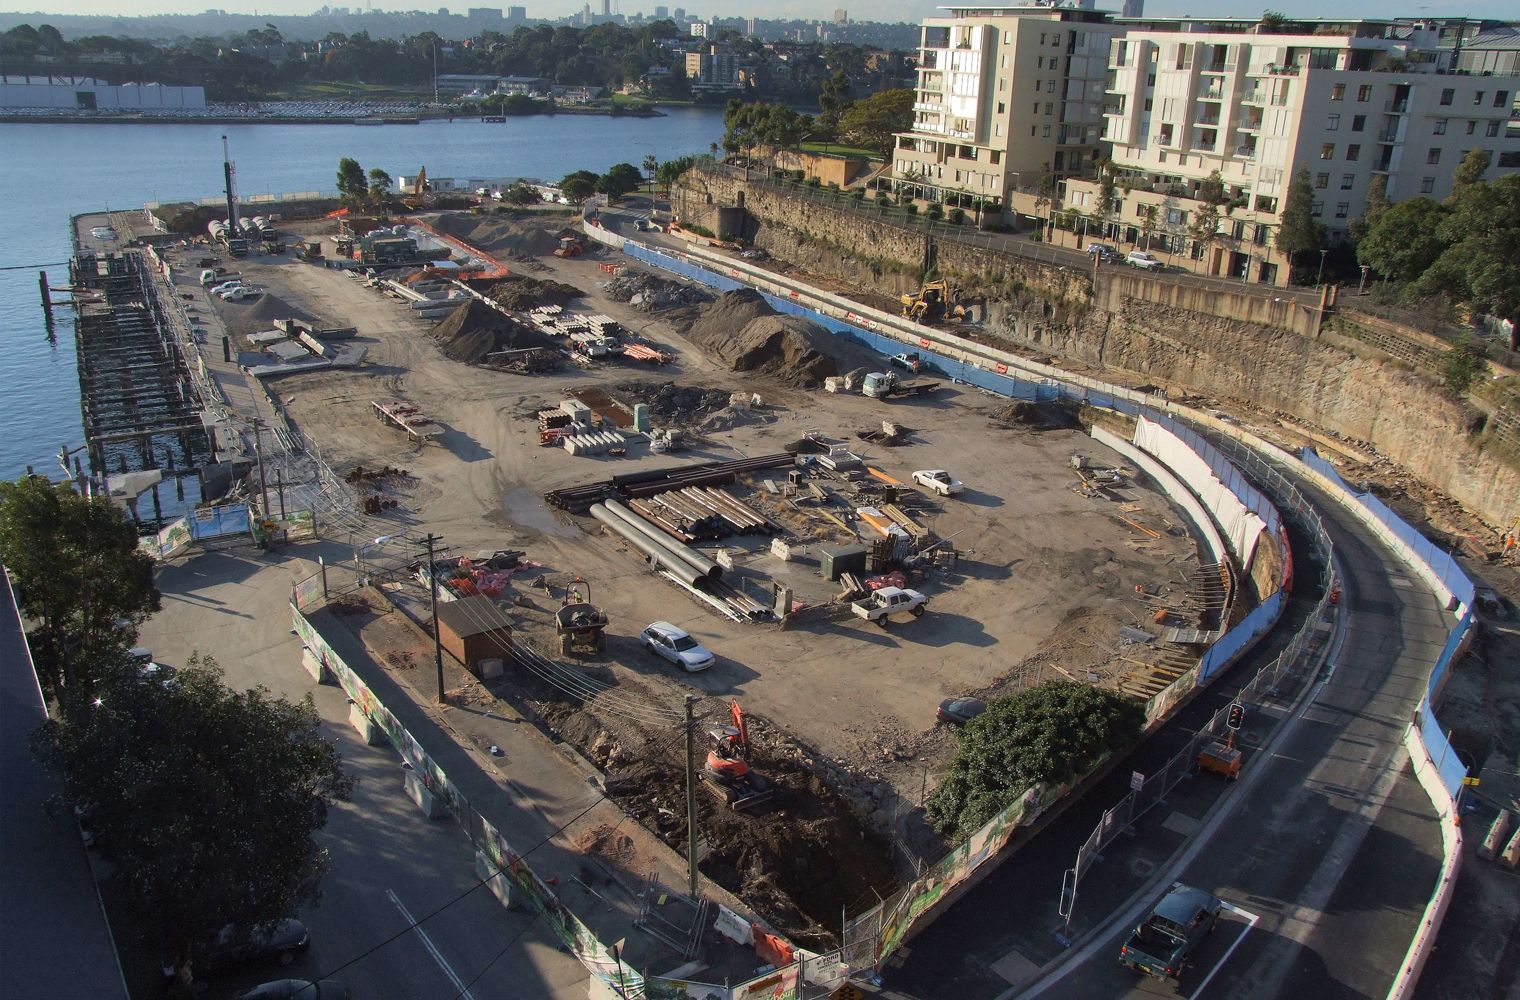 Pirrama Park under construction 2008. (Paul Patterson / City of Sydney)